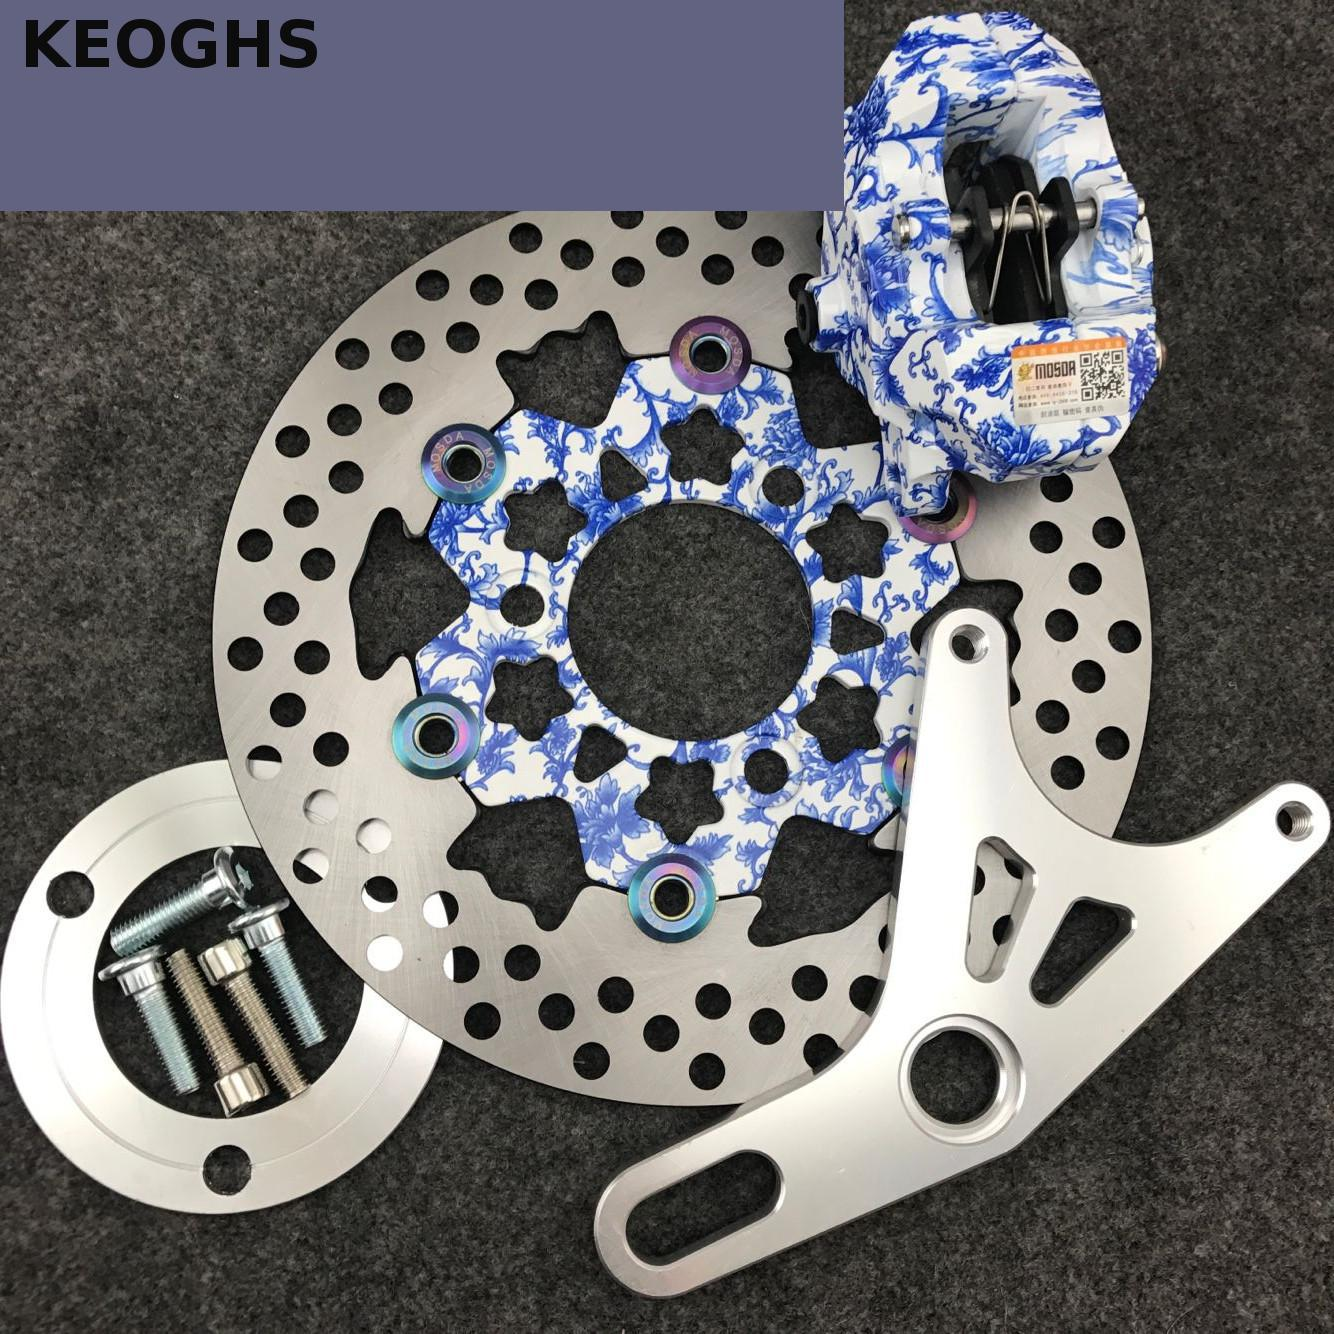 Keoghs Motorcycle Rear Brake System White And Blue Chinese Style 220mm Brake Disc/2 Piston Caliper For Yamaha Scooter keoghs motorcycle floating brake disc 240mm diameter 5 holes for yamaha scooter